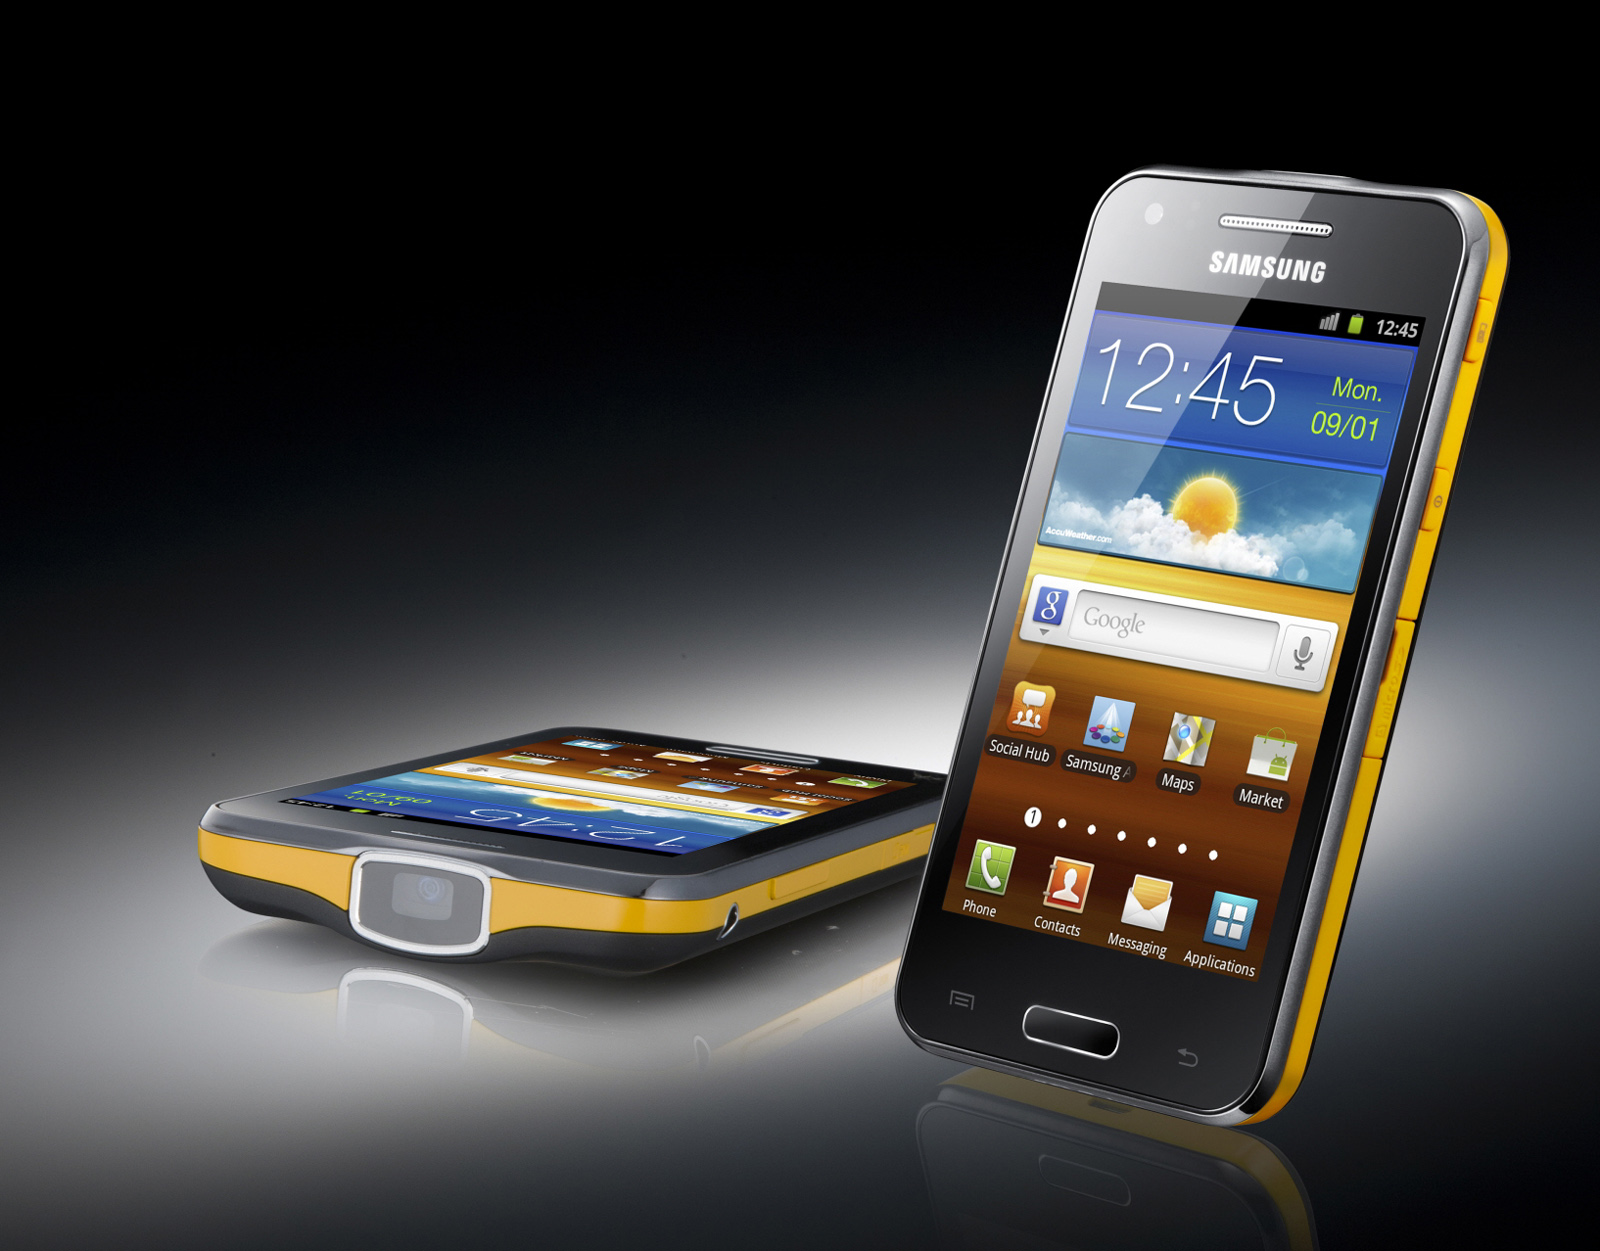 samsung galaxy beam smartphone with portable projector. Black Bedroom Furniture Sets. Home Design Ideas